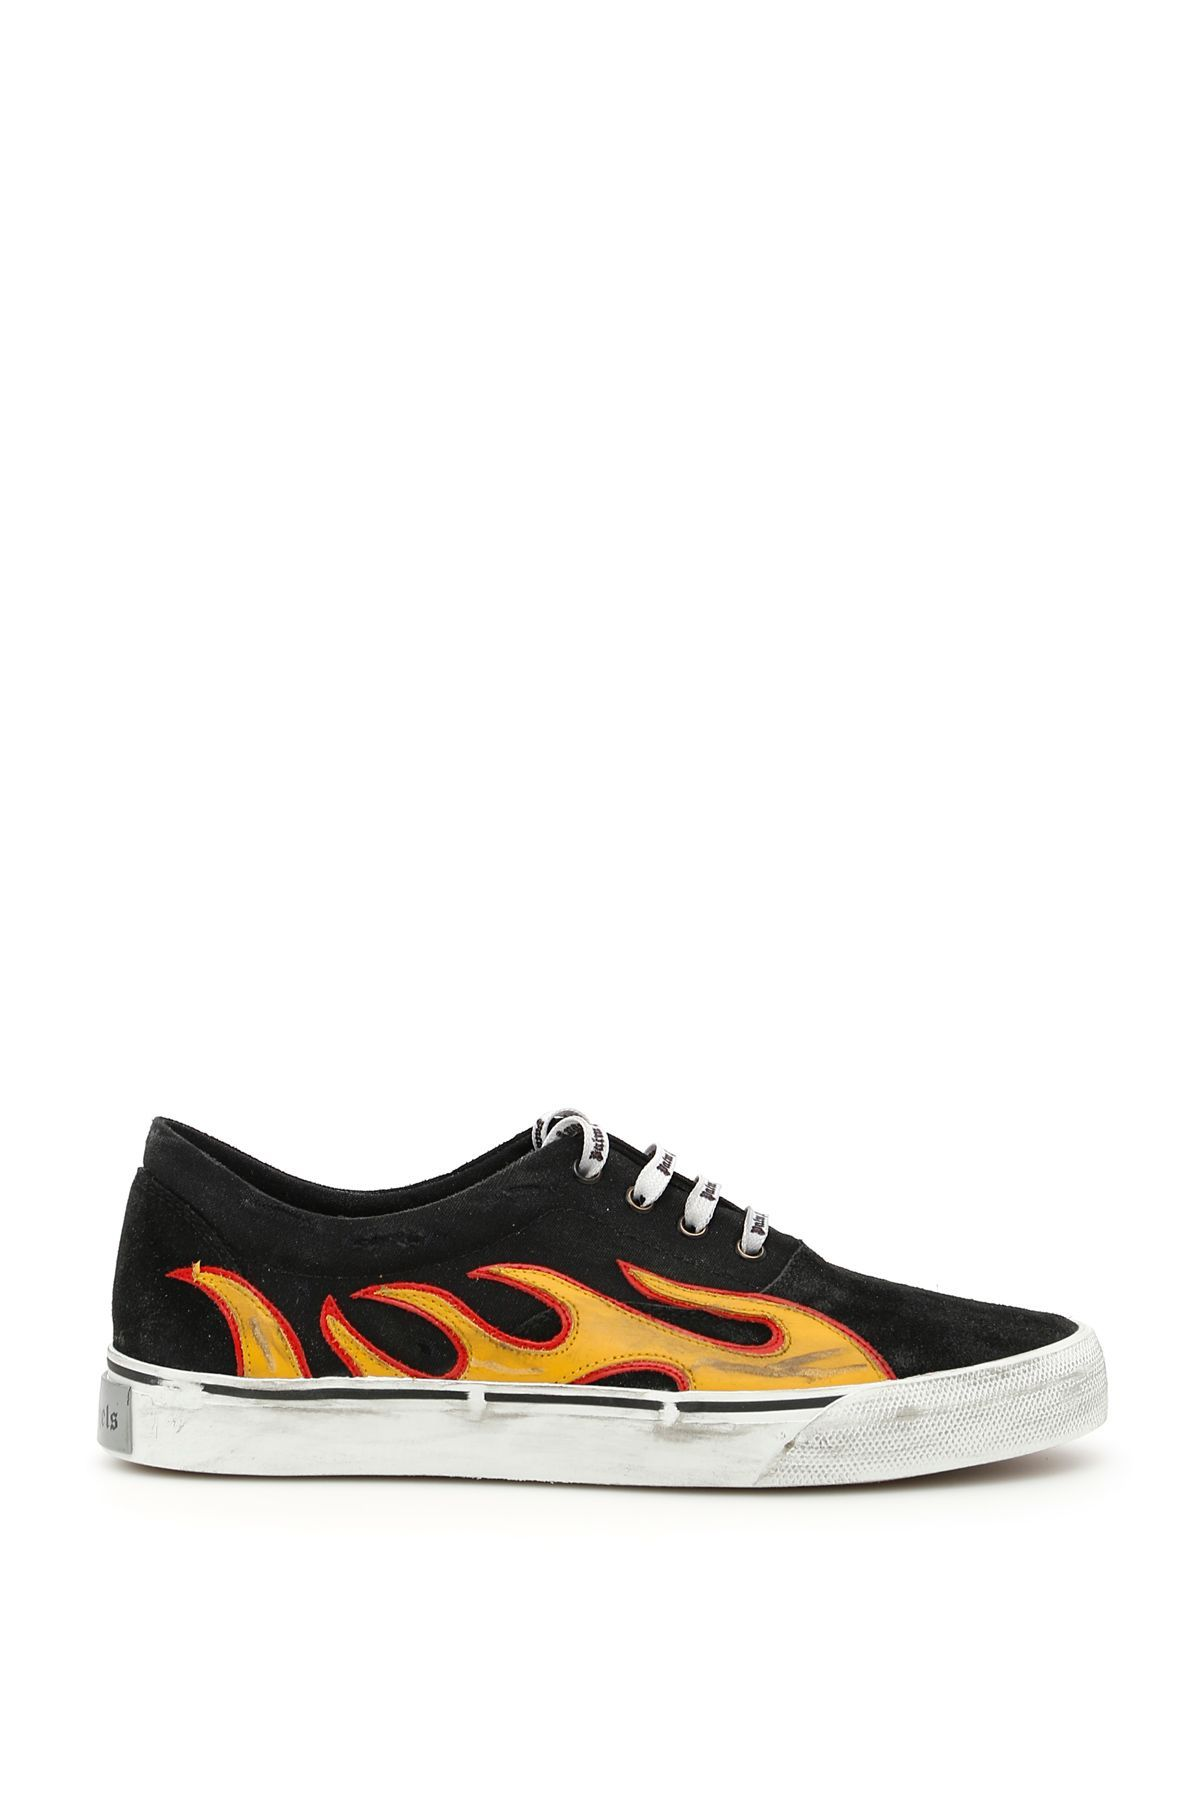 fd5e6ba7150a7 PALM ANGELS DISTRESSED FLAME SNEAKERS. #palmangels #shoes # | Palm ...